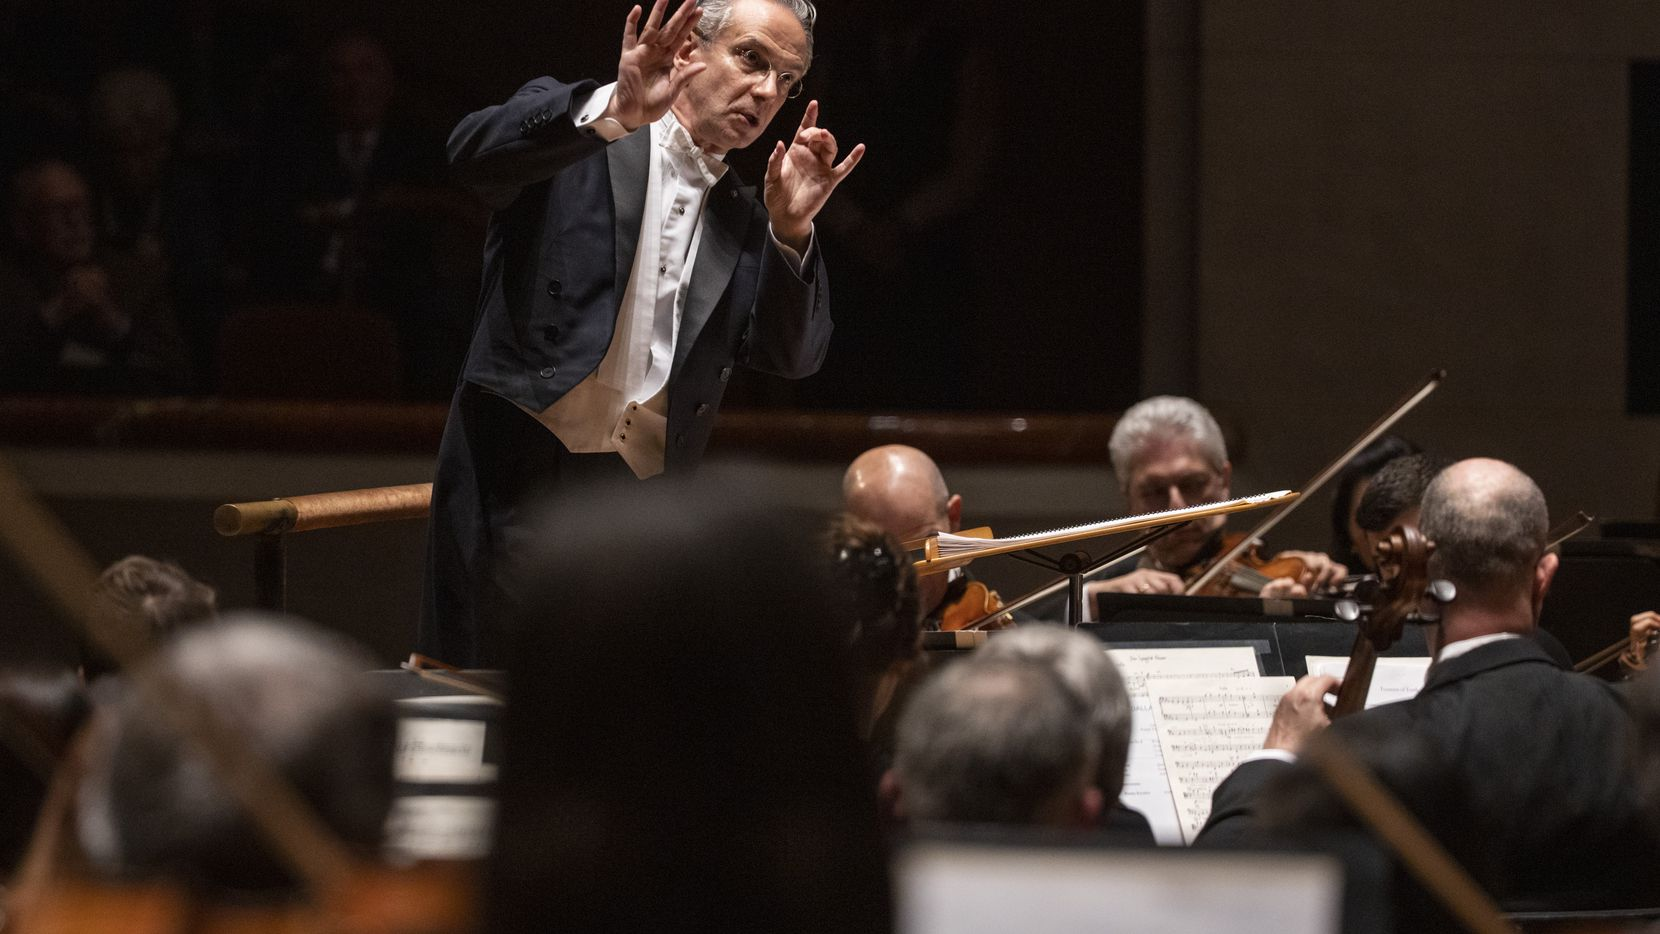 Dallas Symphony Orchestra music director Fabio Luisi has three primary objectives: perform an opera each season; perform and refine the orchestra's sound around the core, Central European orchestral repertoire, namely Brahms, Bruckner, Richard Strauss and Mahler; and grow the orchestra's repertoire with unfamiliar fare.